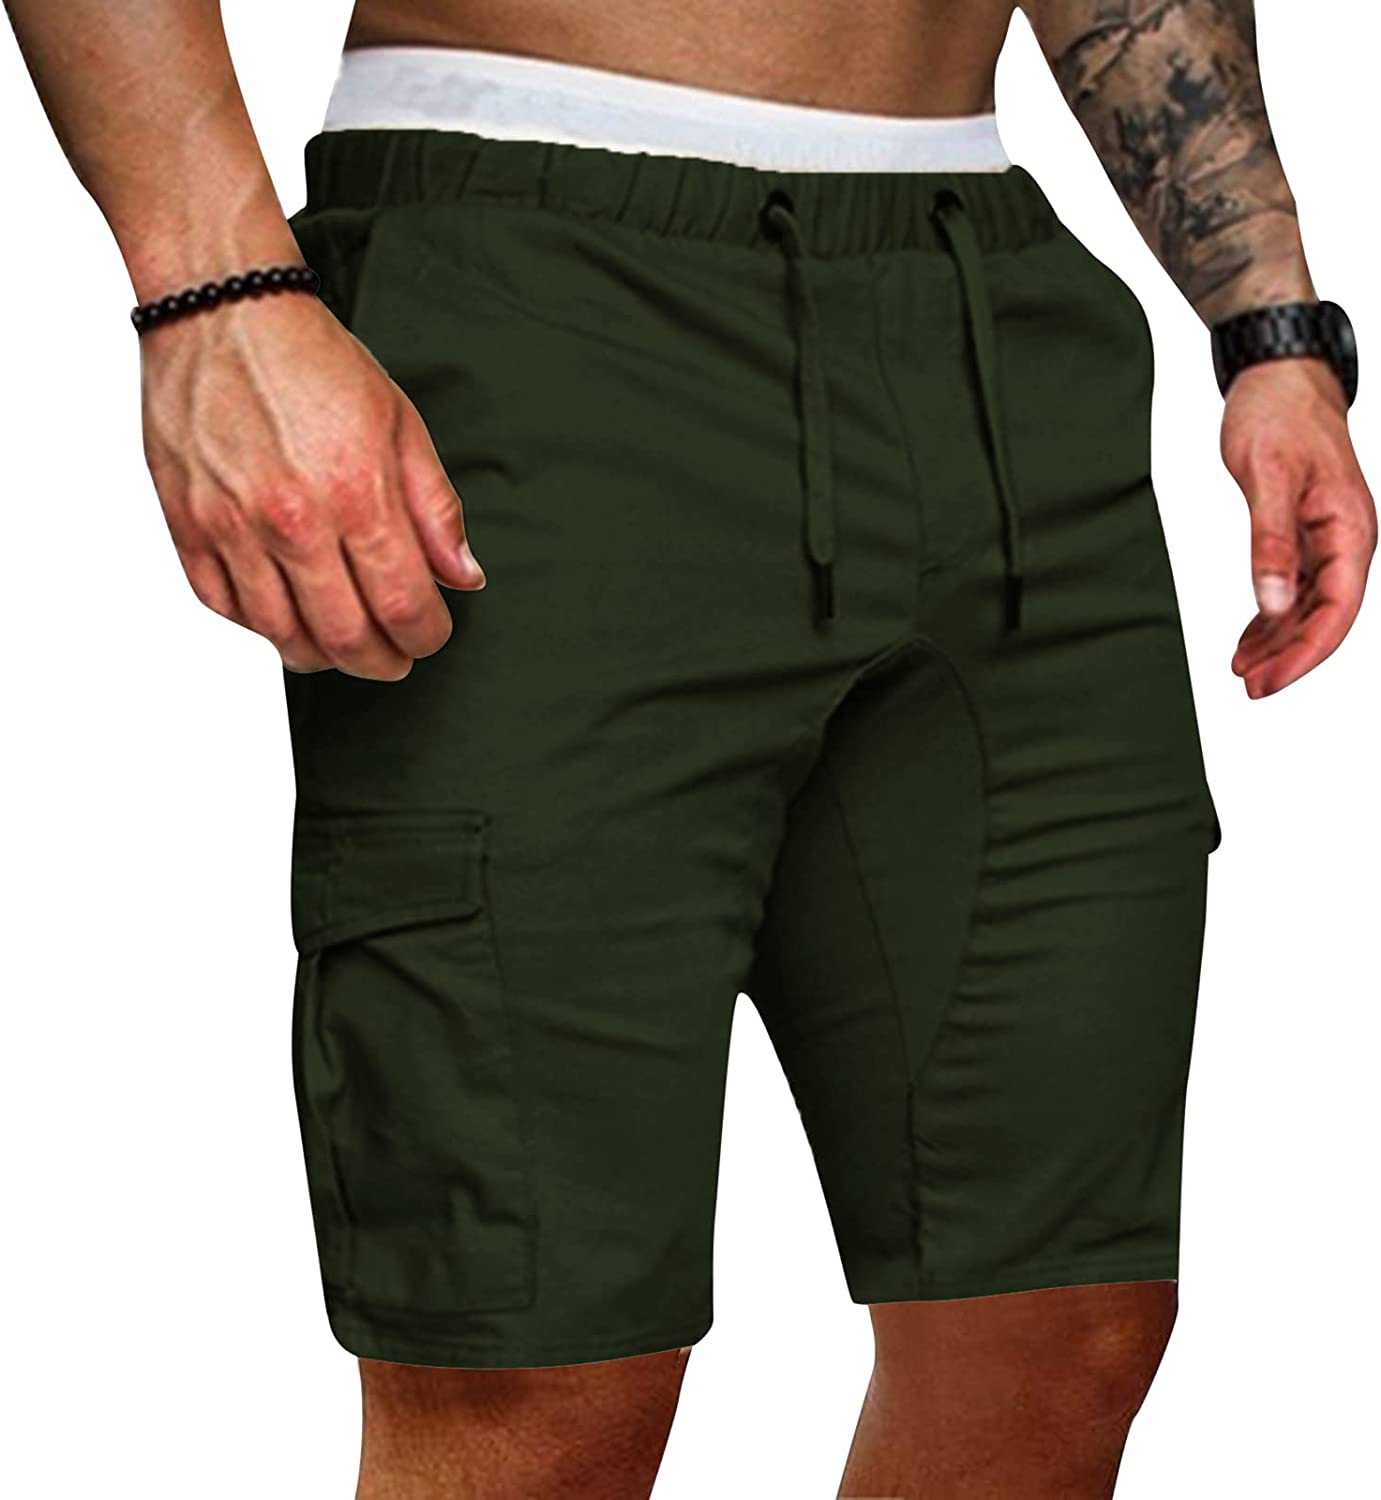 FUNEY Cargo Shorts for Men with Pockets,Casual Drawstring Elastic Waist Workout Athletic Summer Fashion Shorts Pants